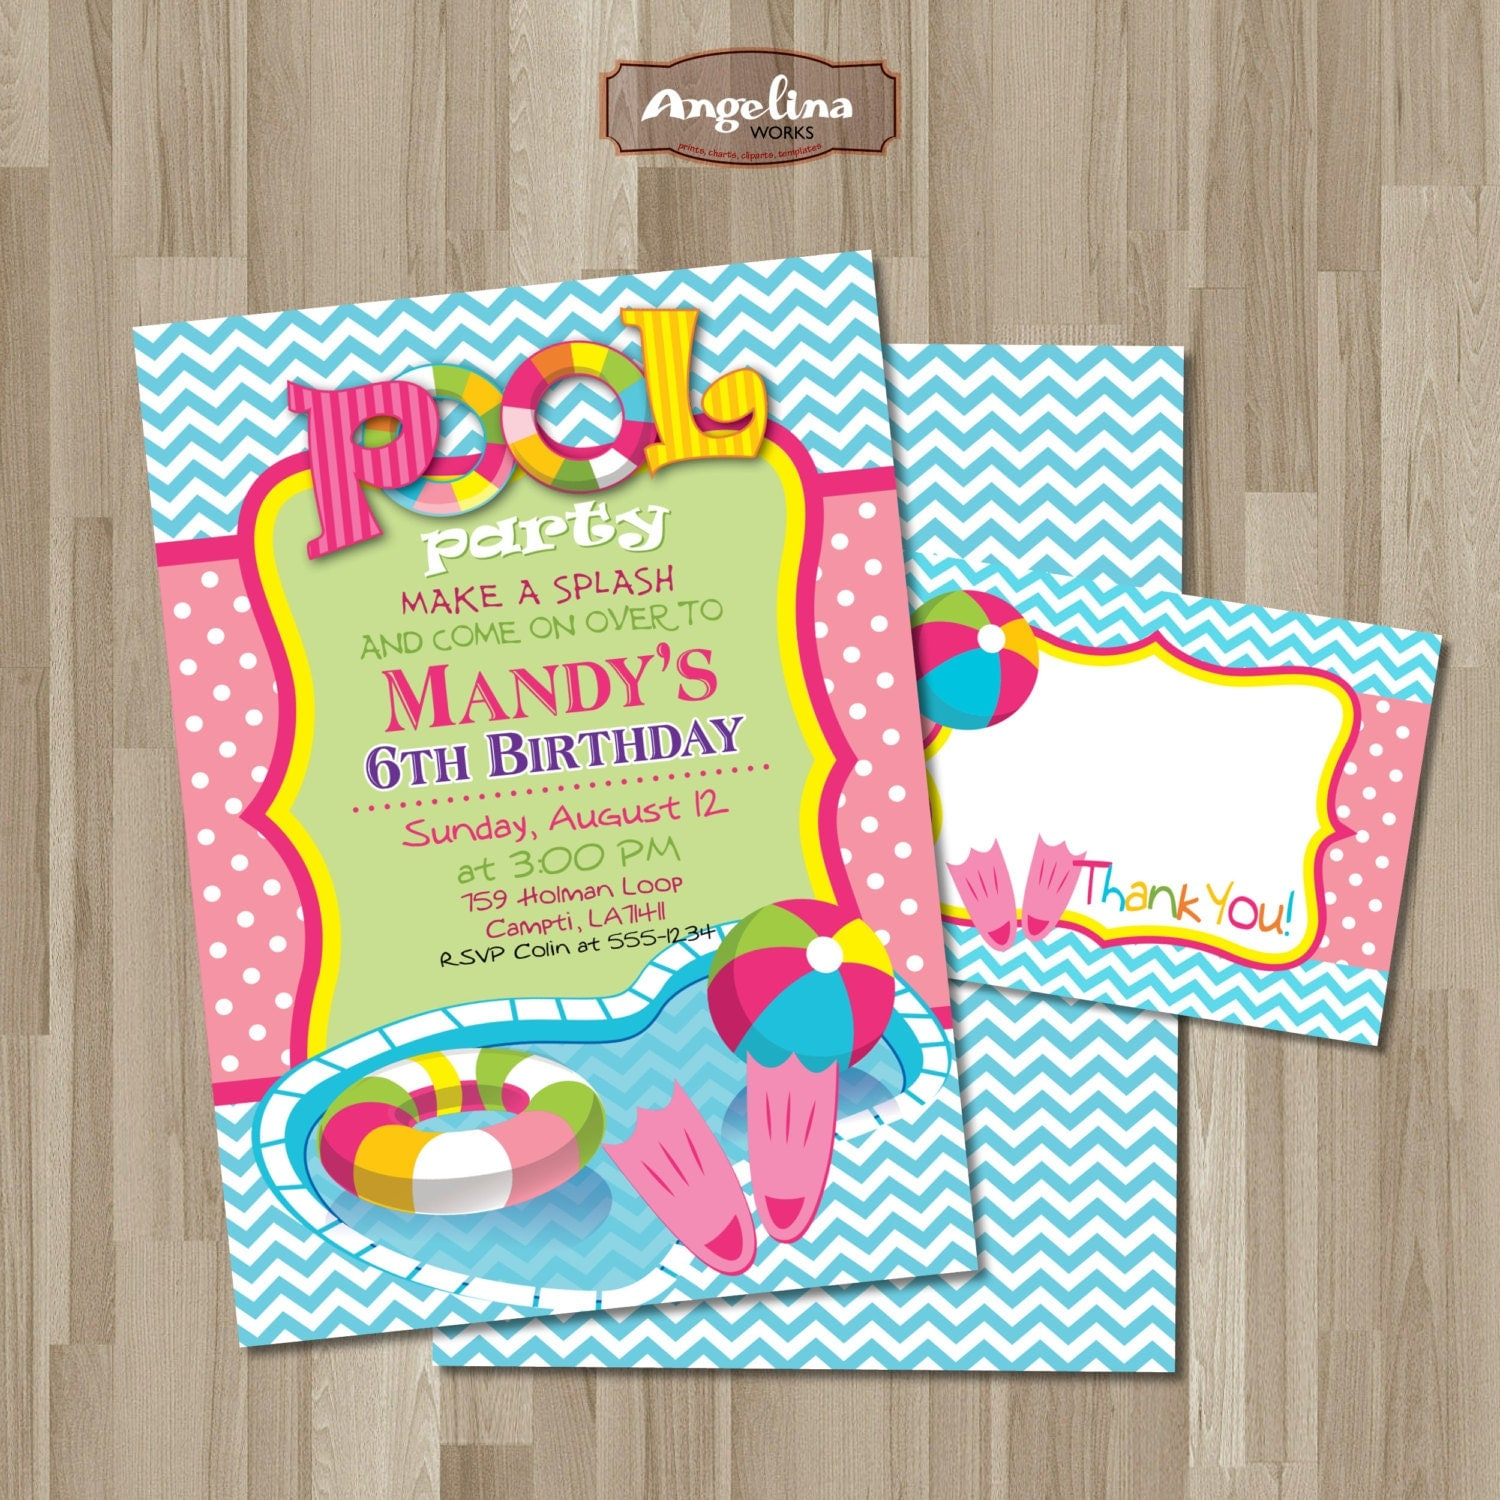 Double Sided Pool Party Birthday Invitation DIY card Pool – Homemade Pool Party Invitations